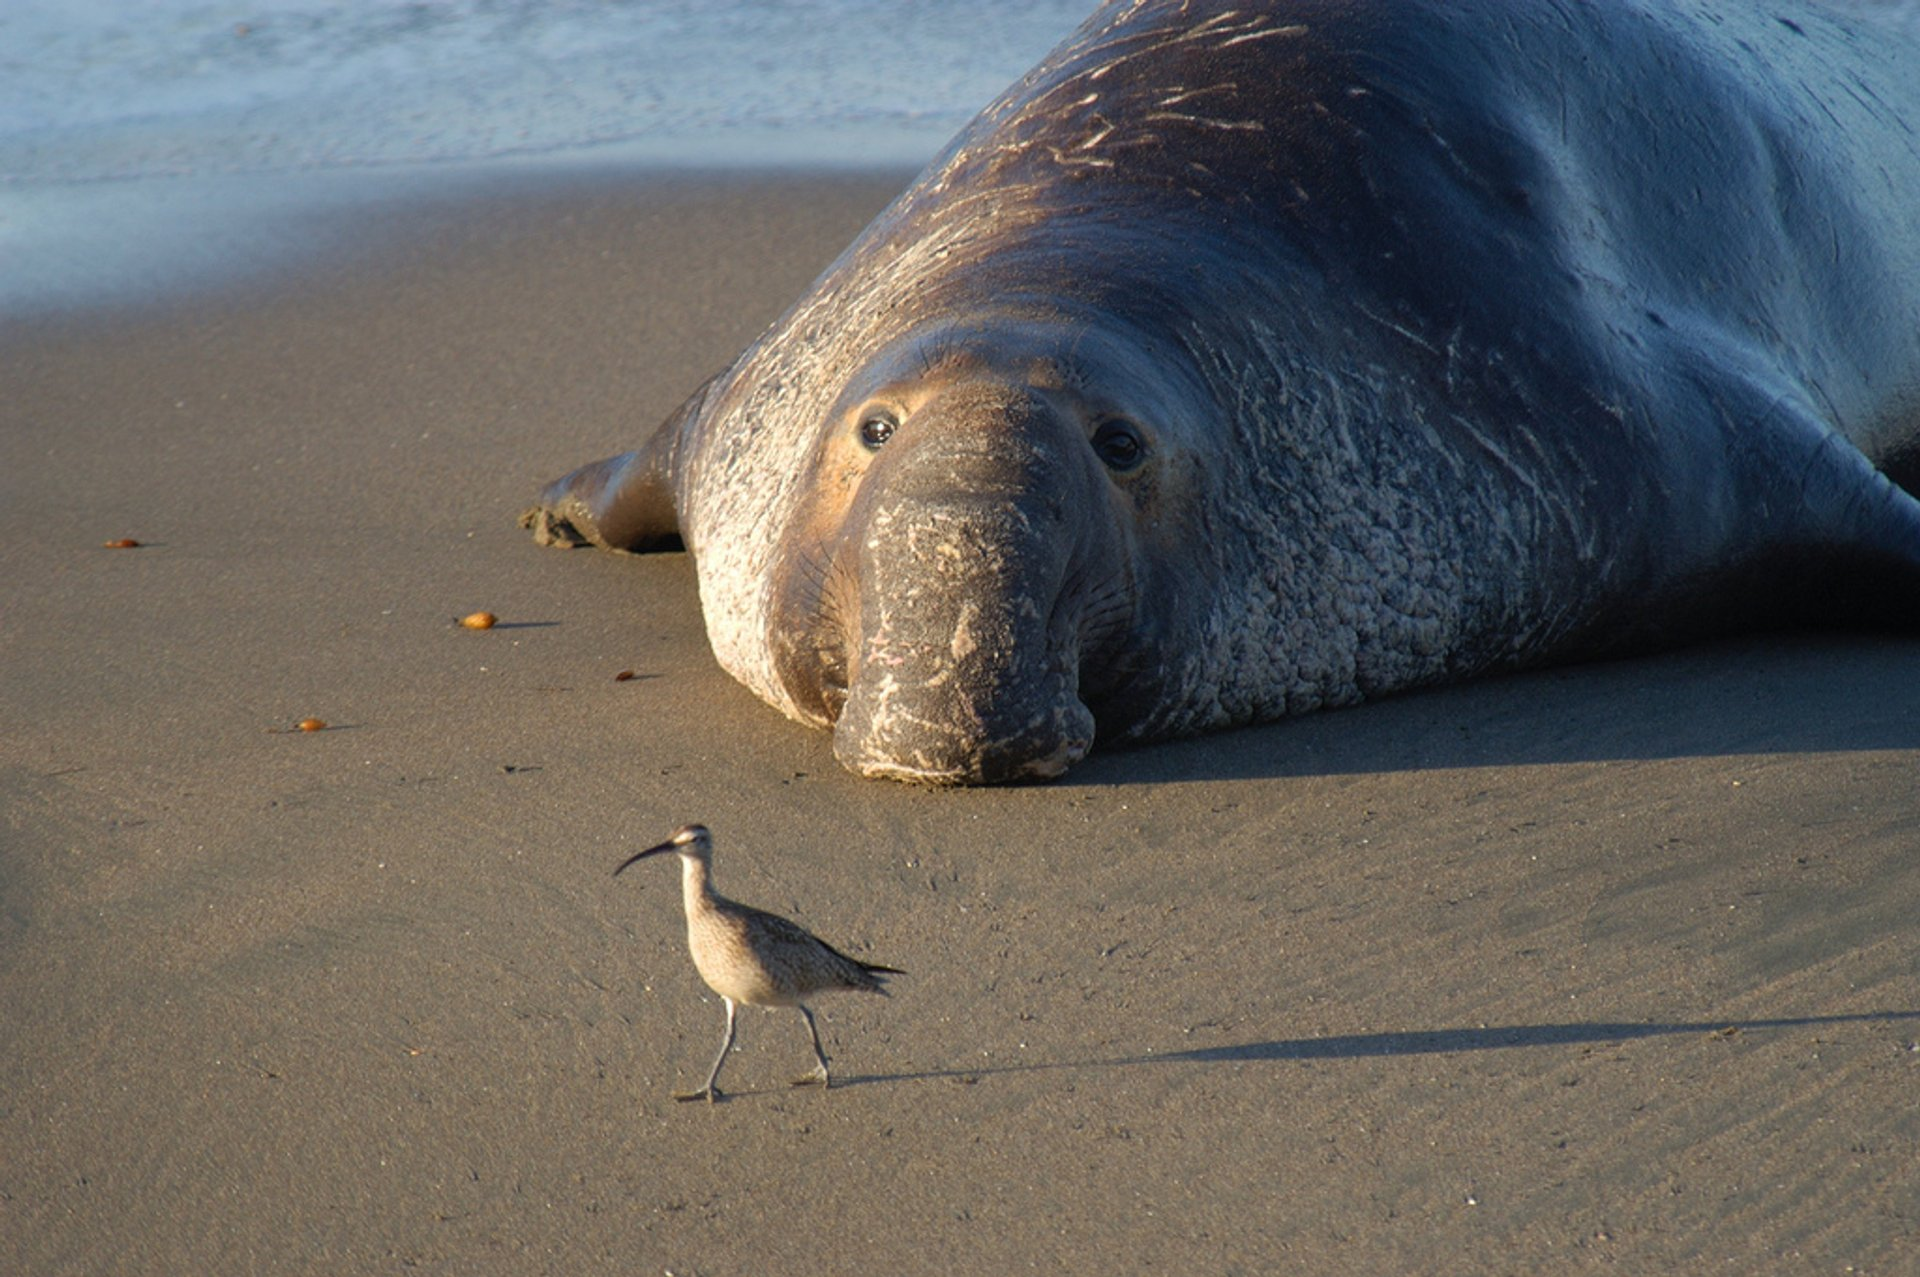 What a romantic elephant seal! 2020